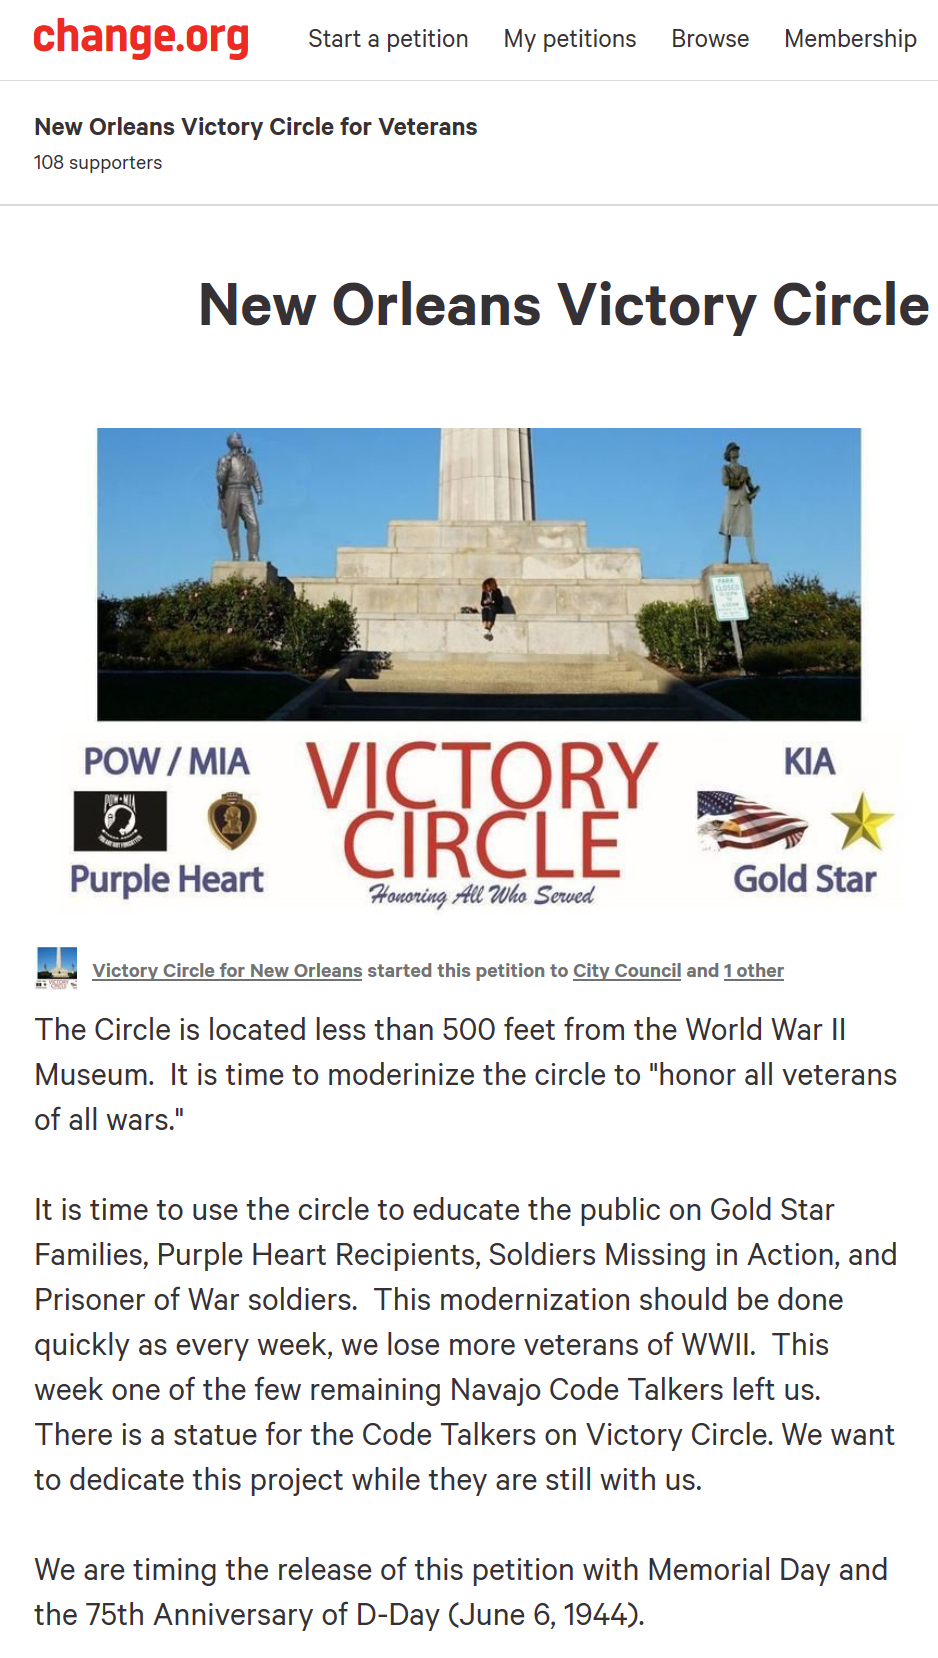 Victory Circle Petition 108